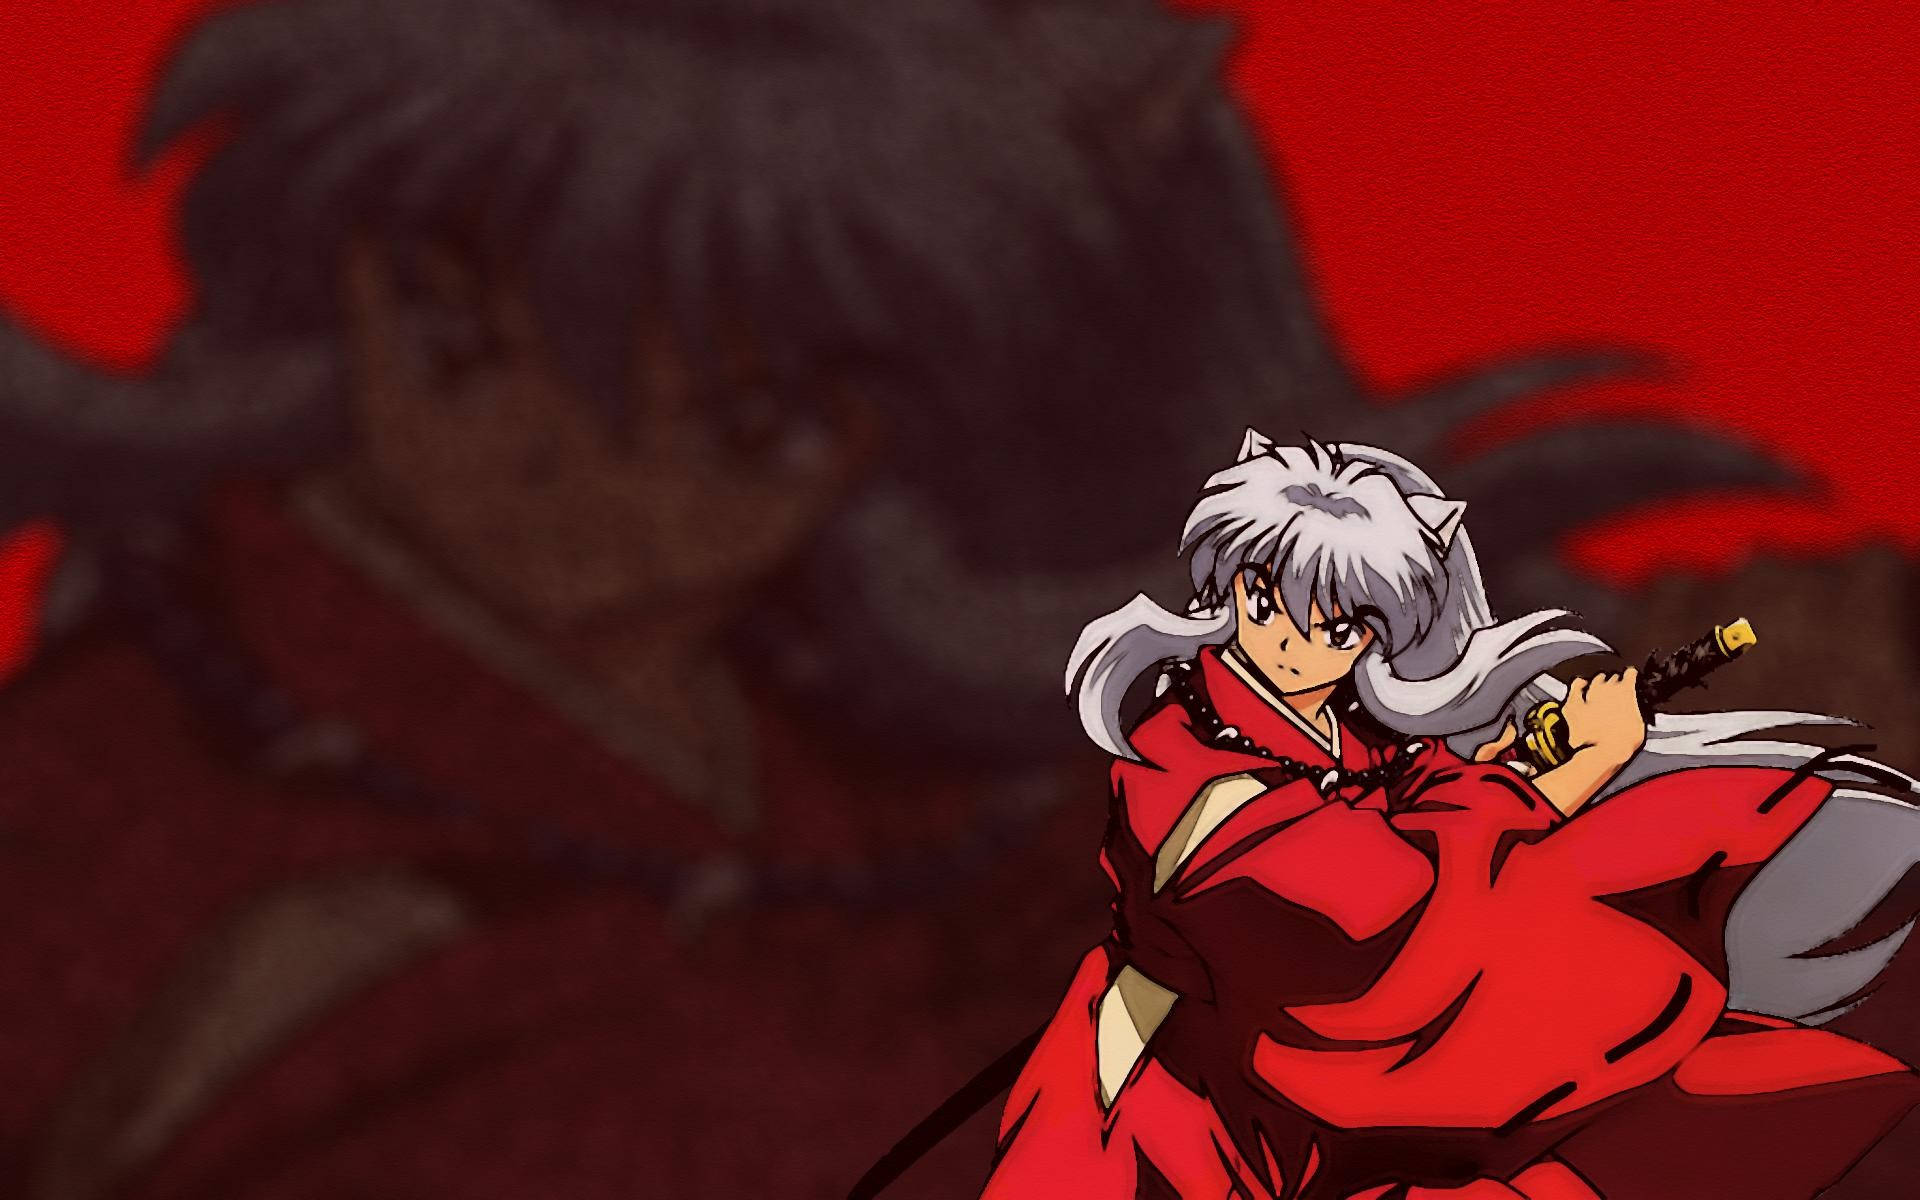 InuYasha-Wallpaper-by-superzproductions